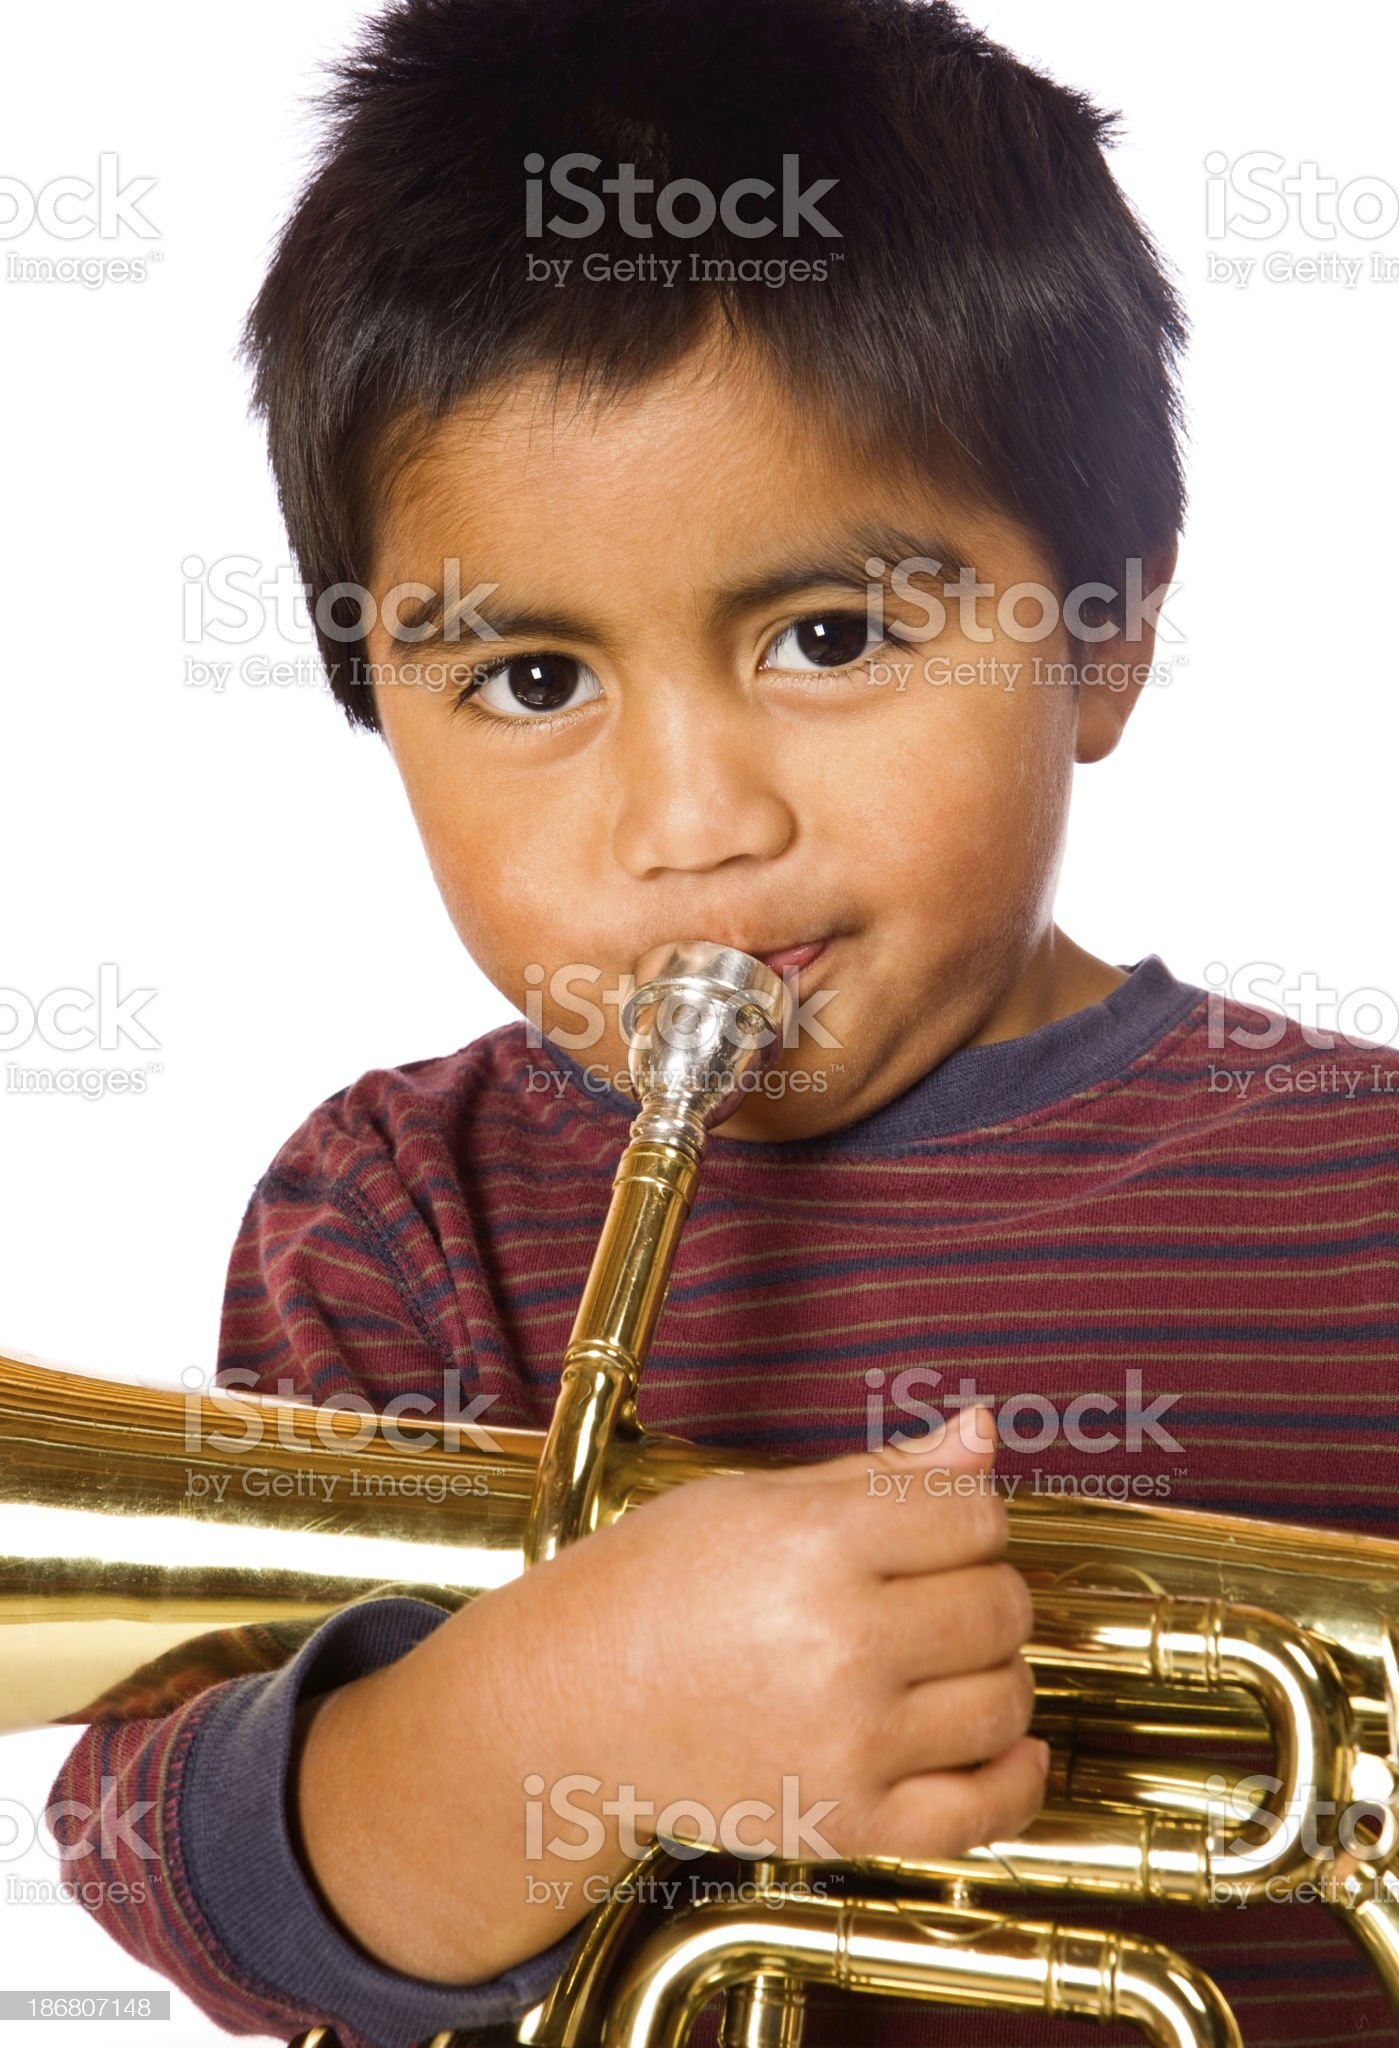 Boy Playing Brass Horn royalty-free stock photo